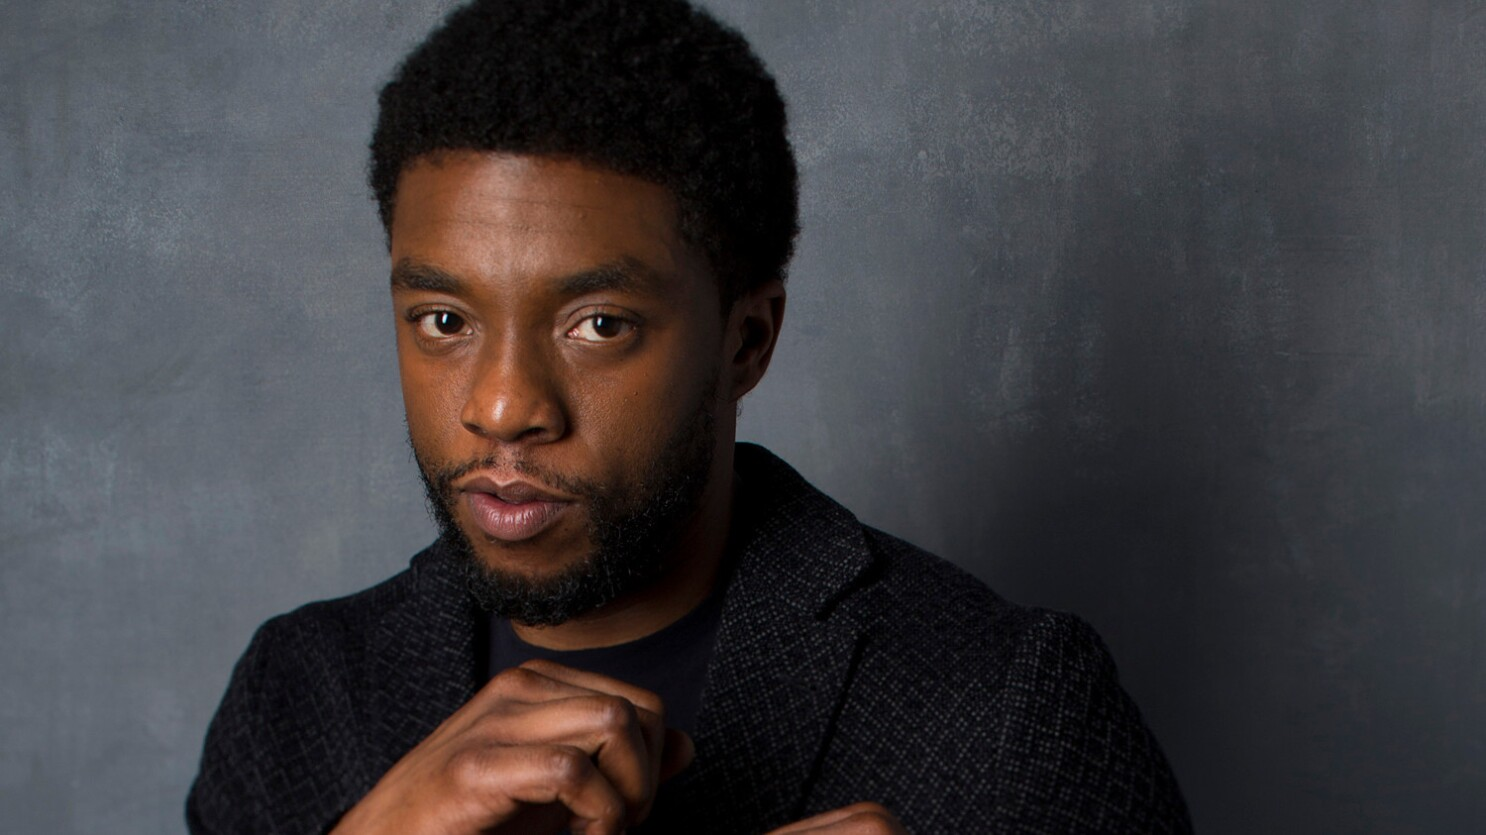 Black Panther Star Chadwick Boseman Dies Of Cancer At 43 Los Angeles Times